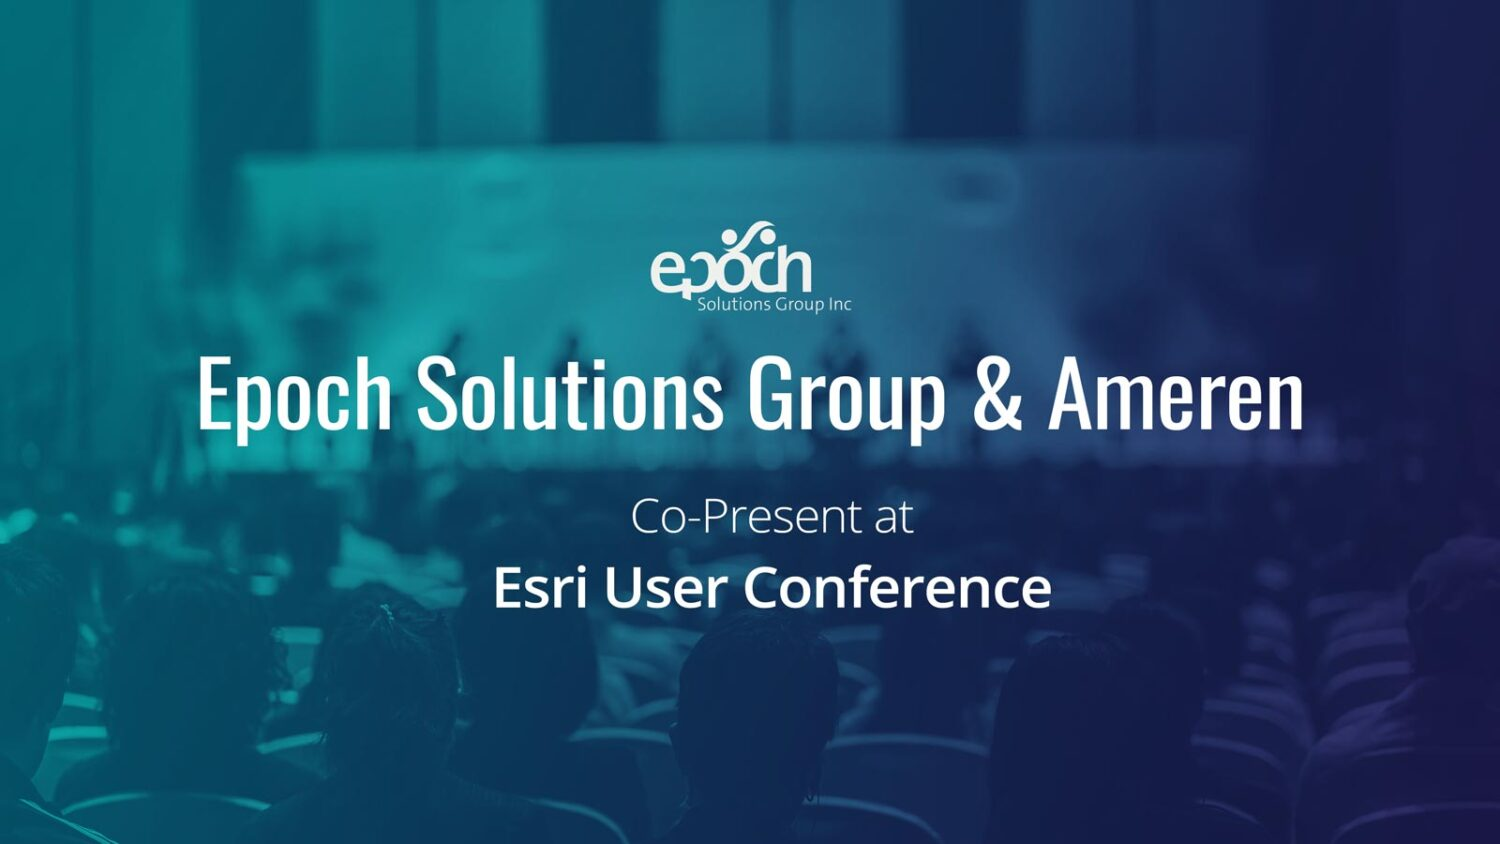 Epoch Solutions Group Presents at the Esri User Conference